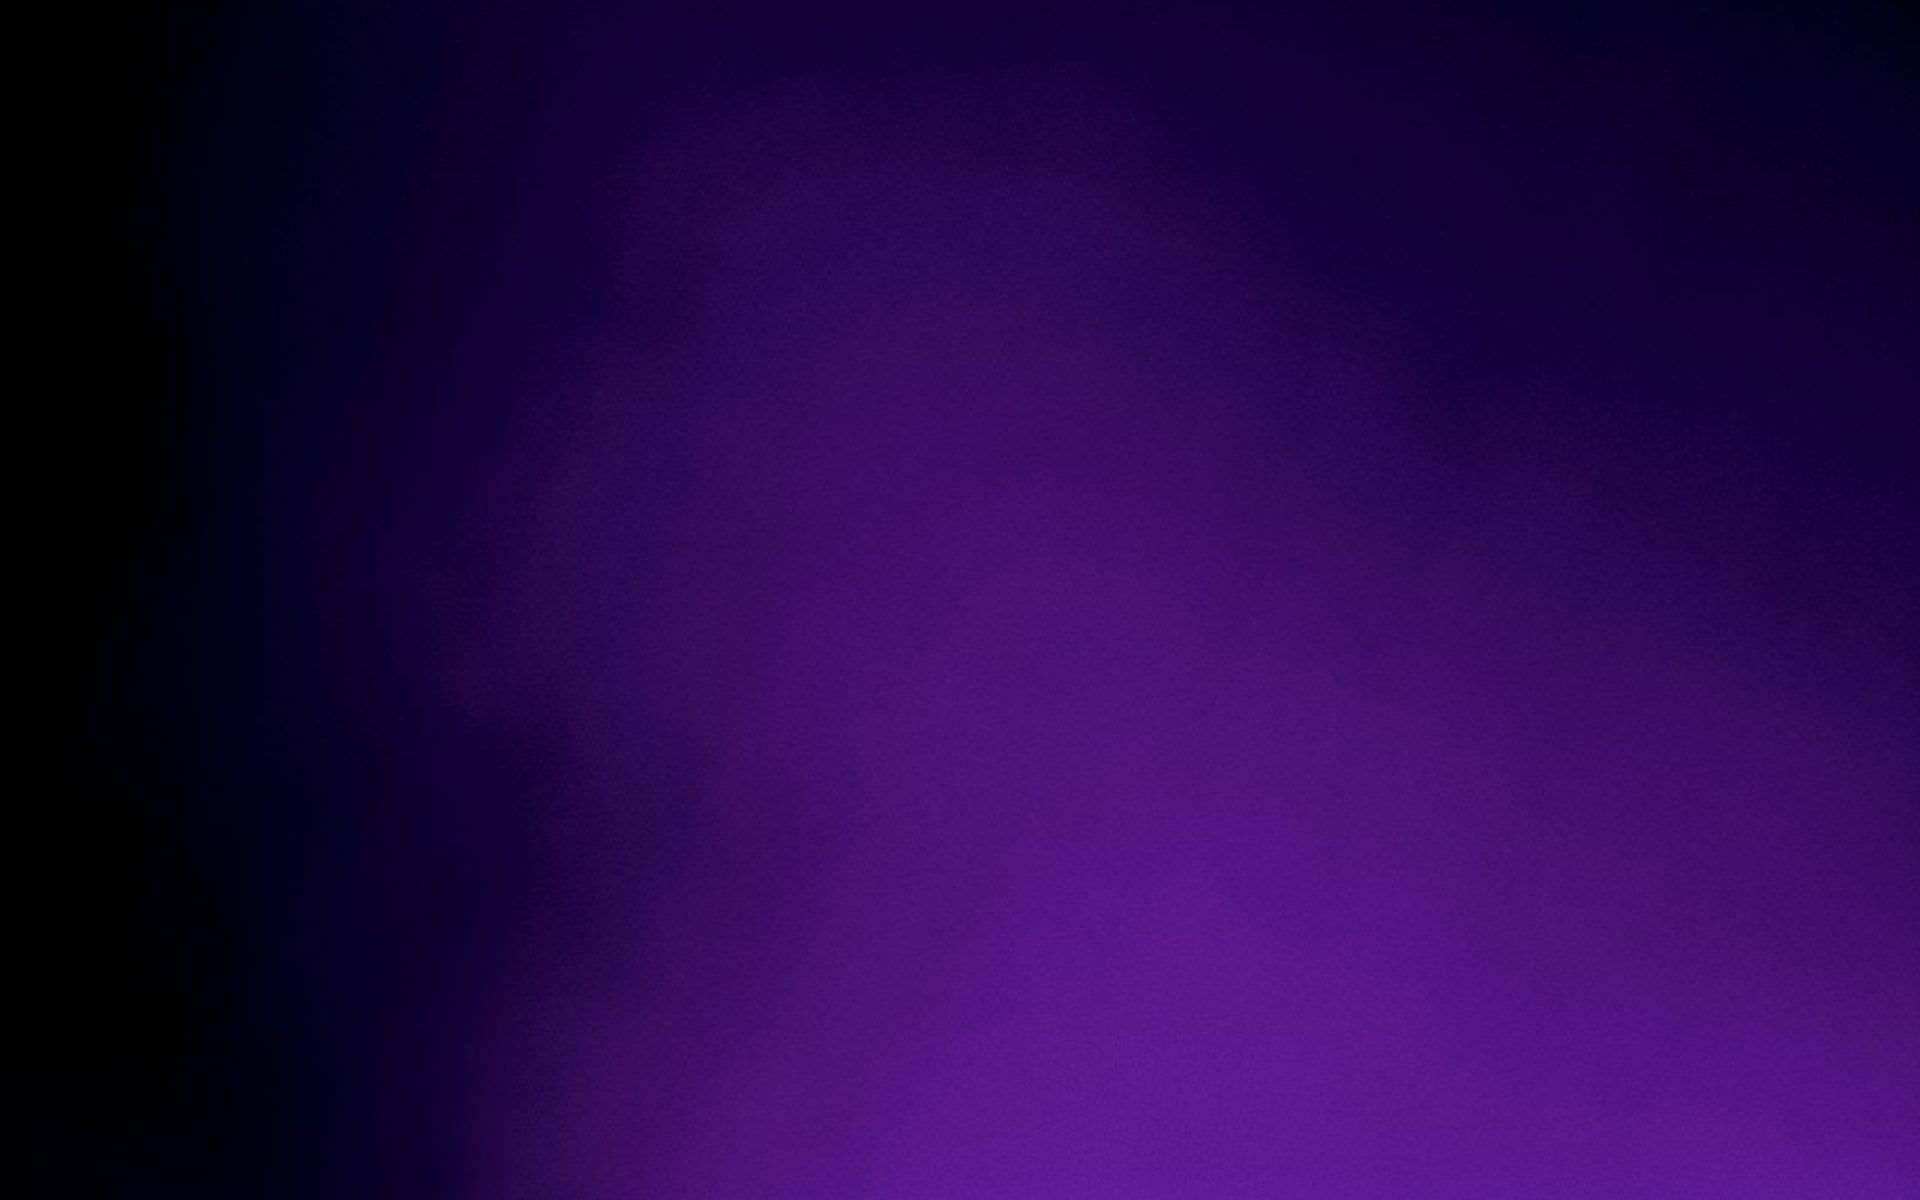 Good Wall Colors 210 Amazing Purple Backgrounds Backgrounds Design Trends